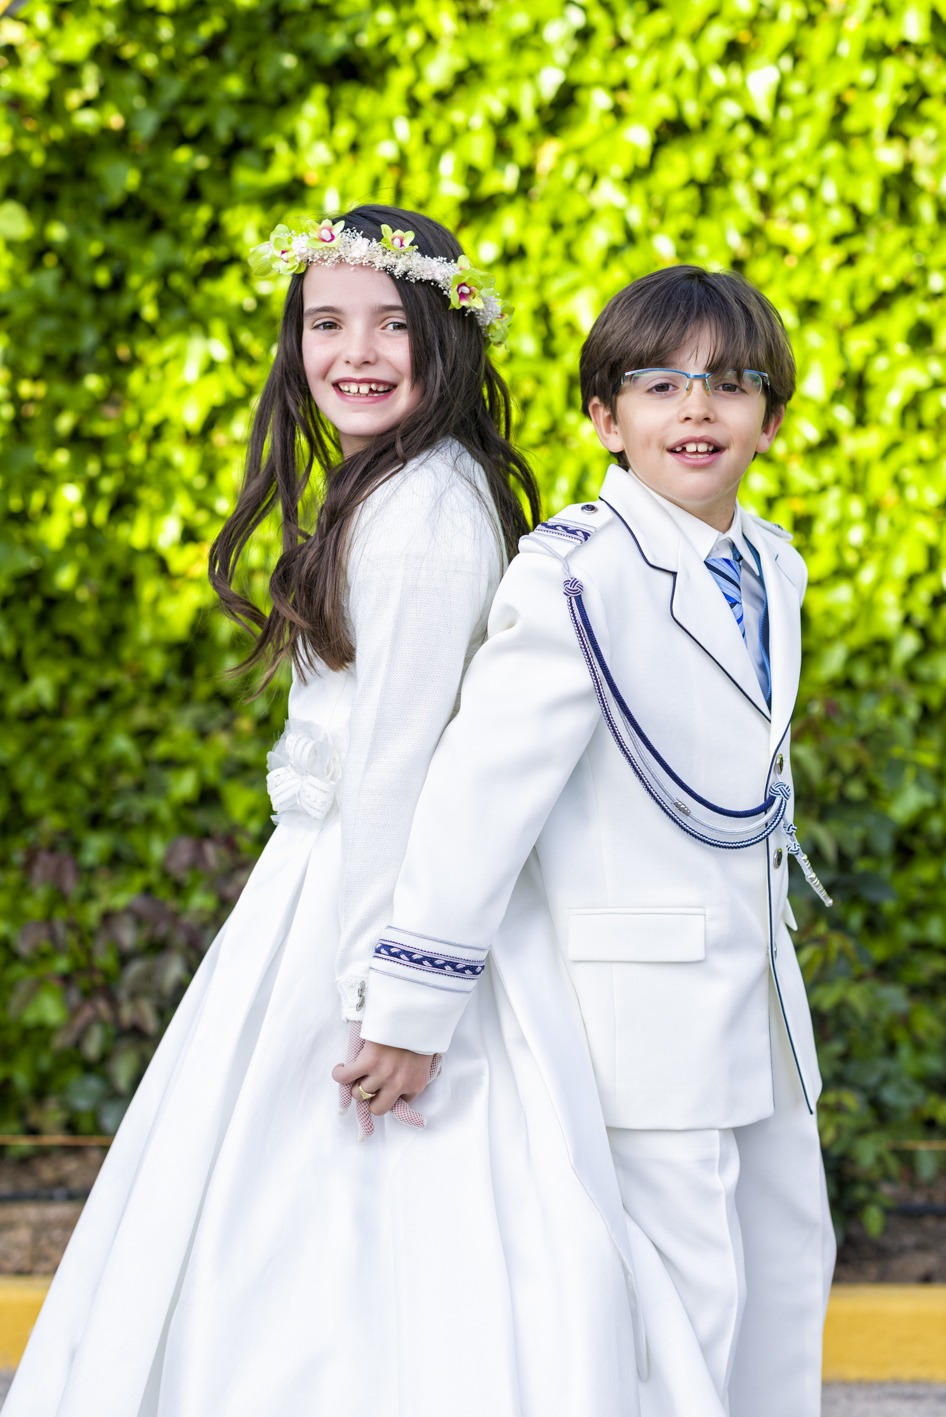 Angie y Samuel-31